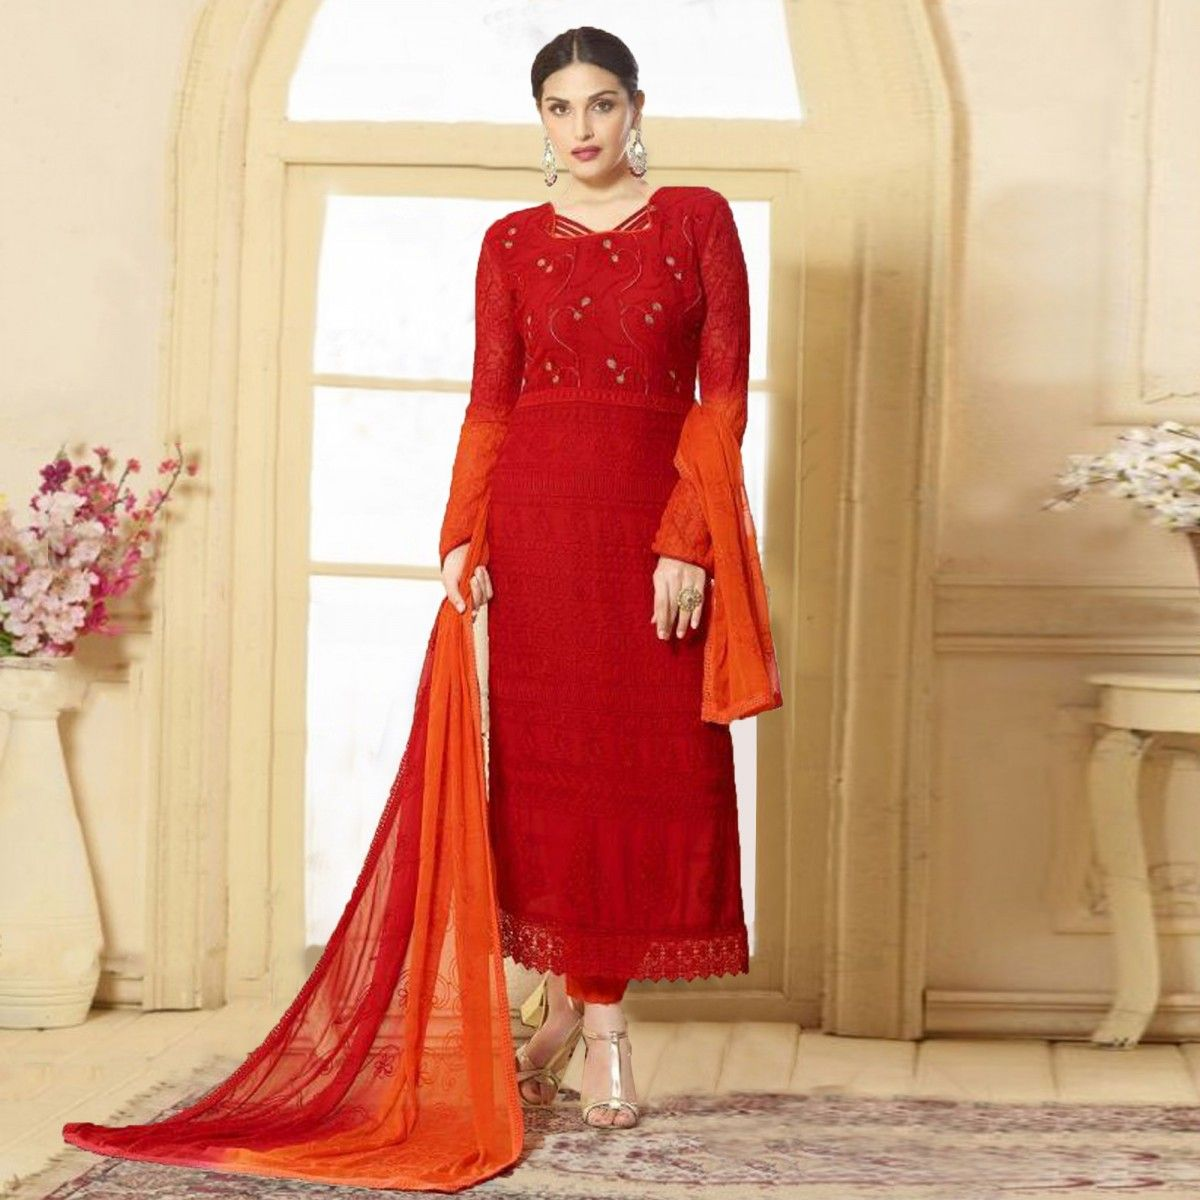 b065266dd6 Buy Red - Orange Pure Chiffon Karachi Suit for womens online India, Best  Prices, Reviews - Peachmode